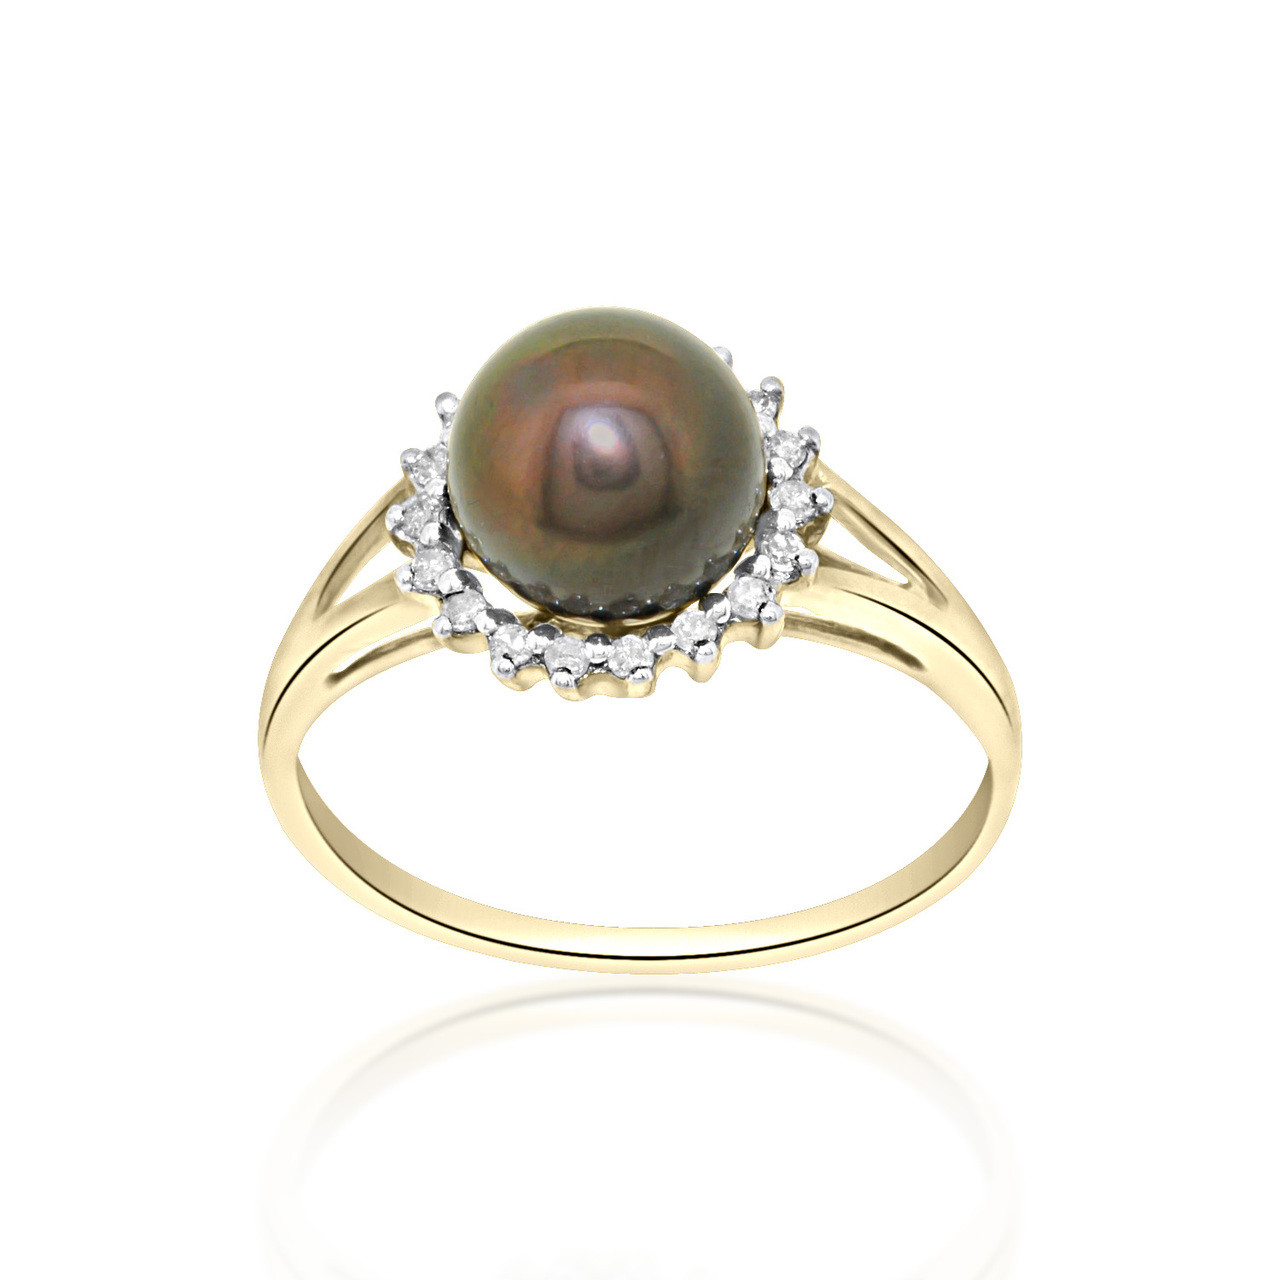 f665410aca4d18 14k Yellow Gold Diamond Black dyed Pearl Ring, Best Price From Shin ...